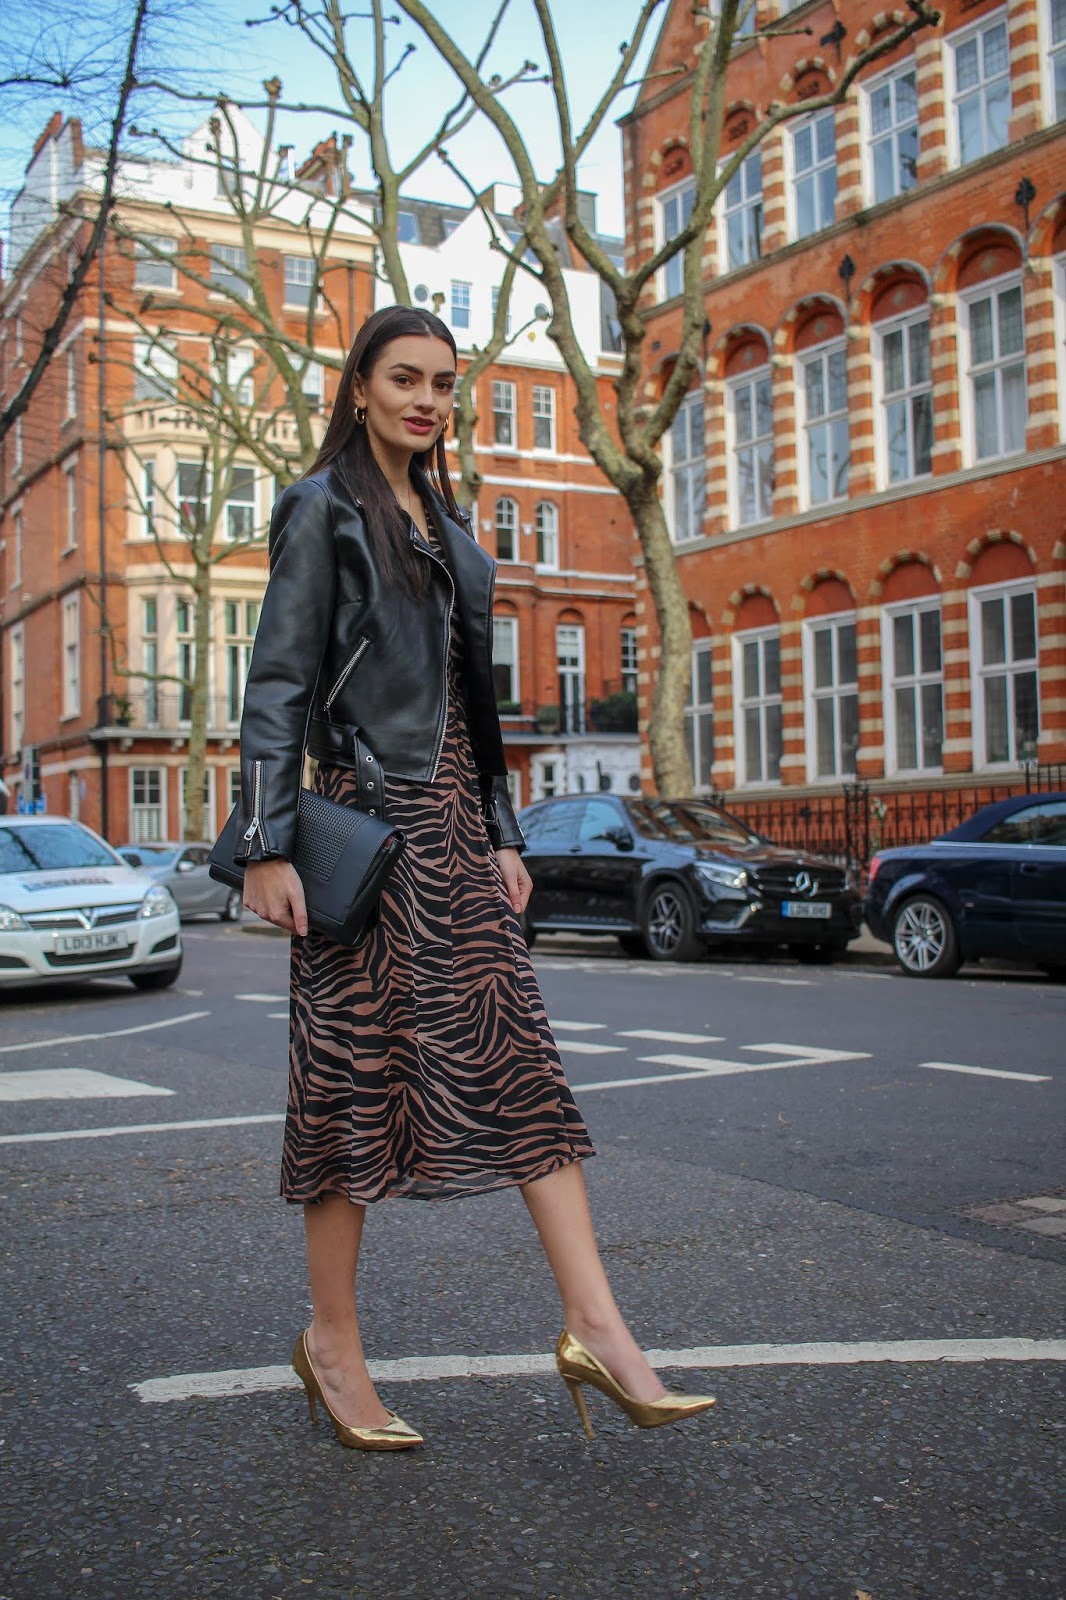 styling tiger print dress day-to-night